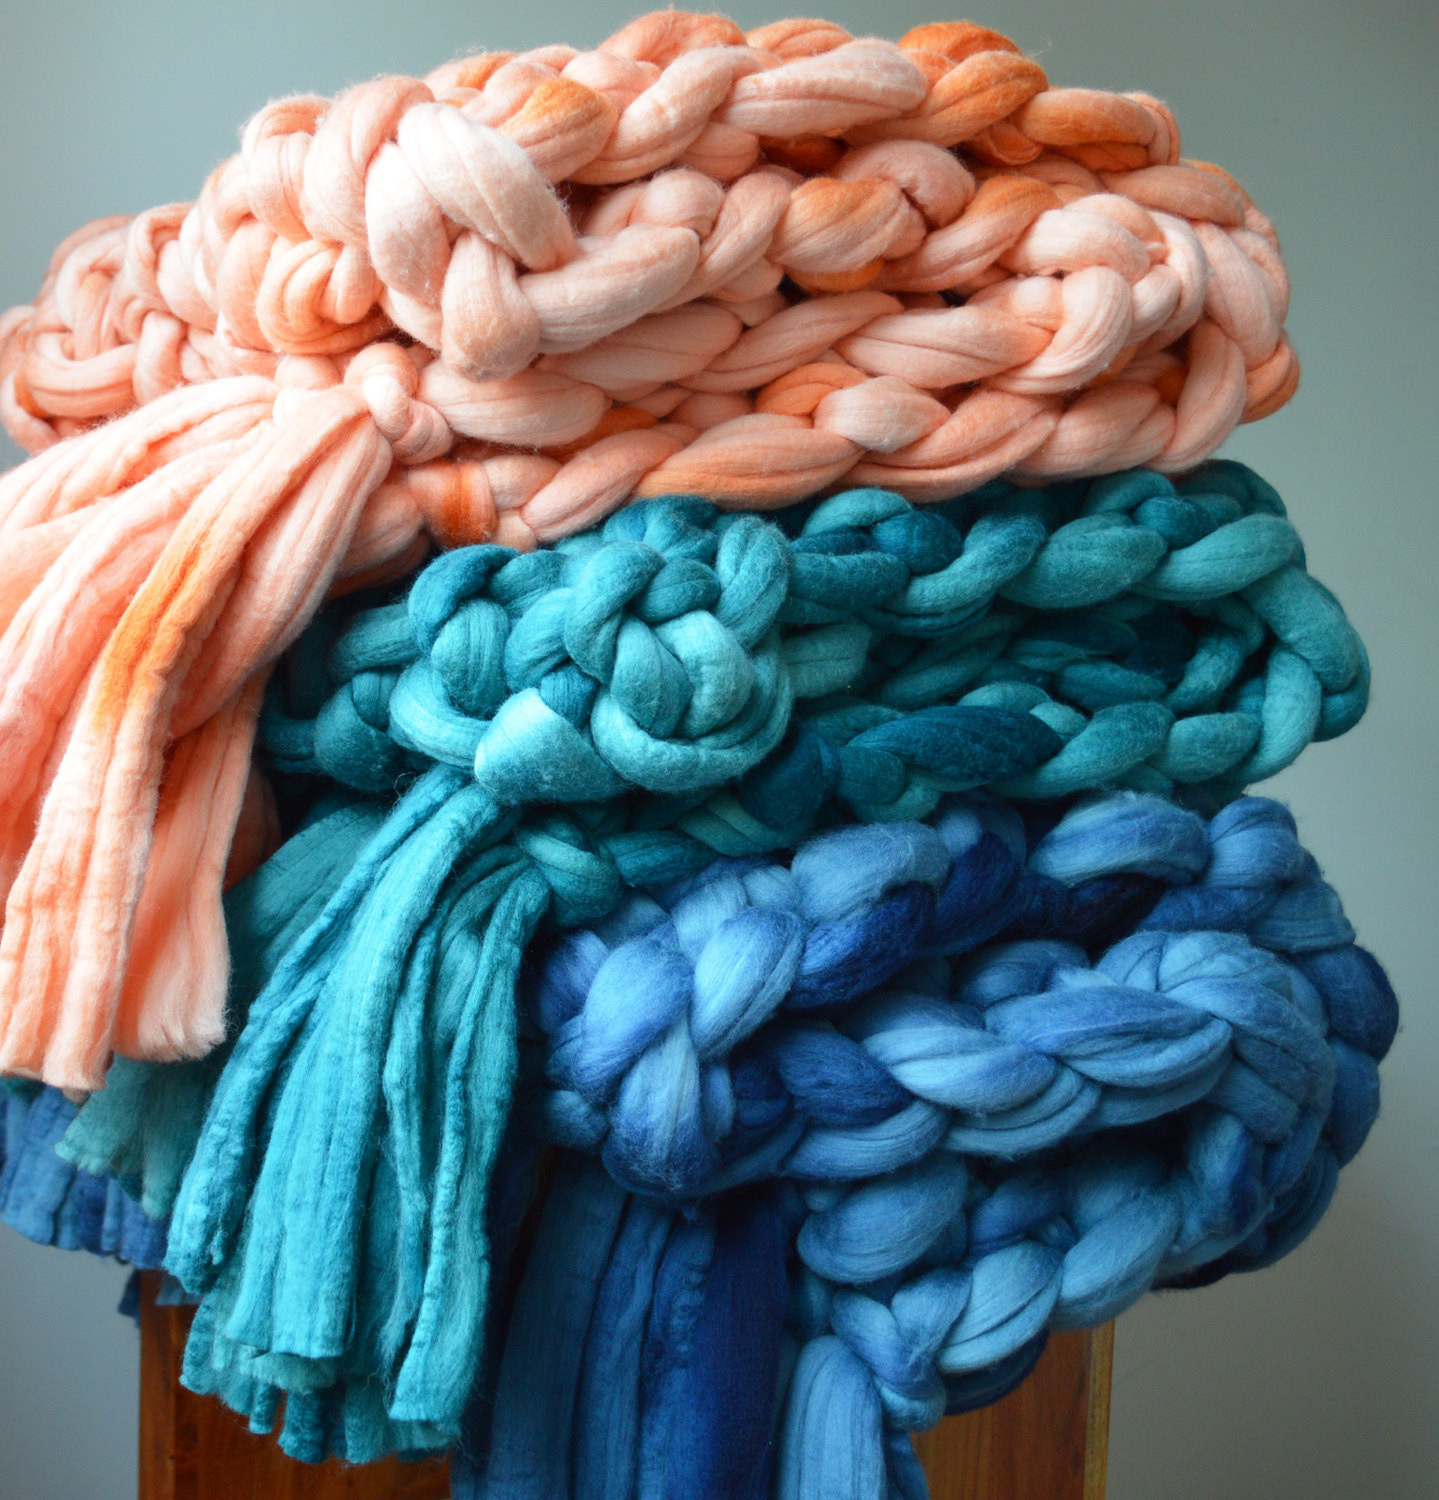 Chunky Knit Blankets Merino Wool Throws with Tassels